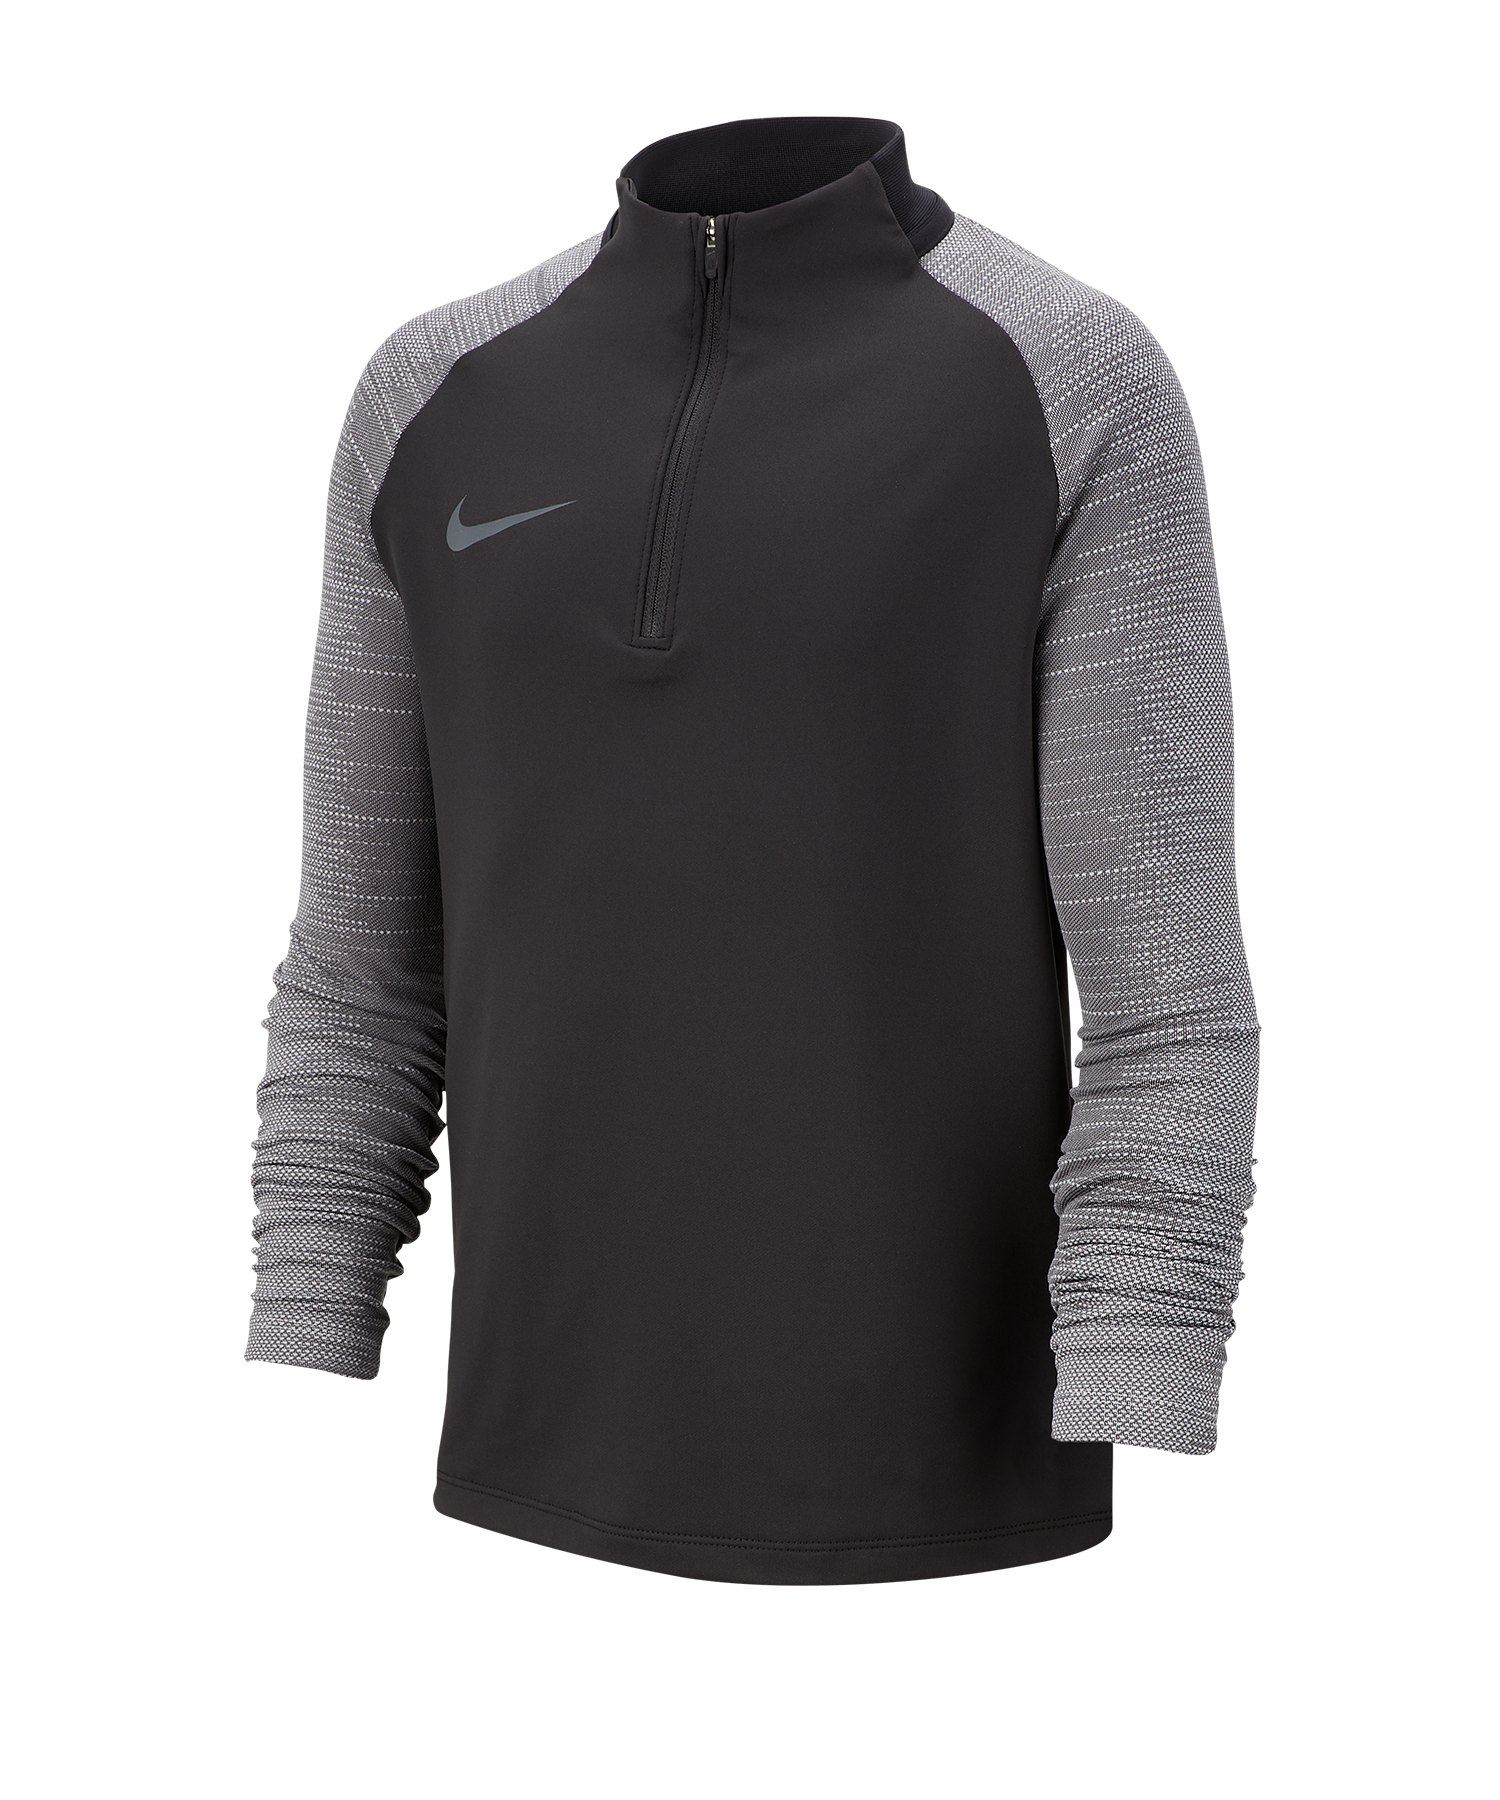 Nike Dri-FIT Strike 1/4 Zip Drill Top Kids F010 - schwarz